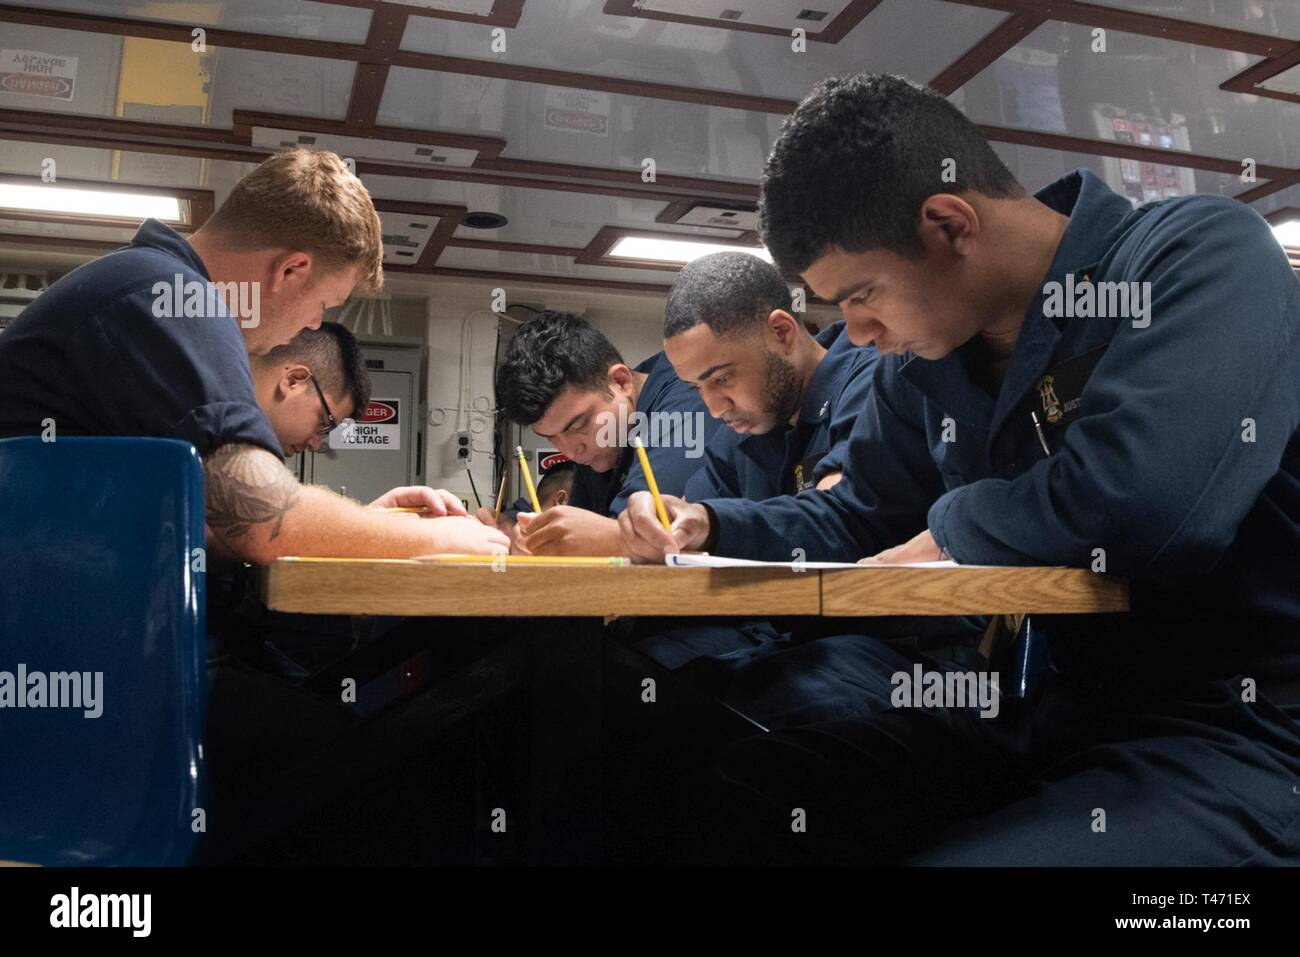 SOUTH CHINA SEA (March 14, 2019) Sailors take the Navy-wide petty officer 2nd class advancement exam on the mess deck of the Avenger-class mine countermeasures ship USS Chief (MCM 14). Chief, part of Mine Countermeasure Squadron 7, is operating in the Indo-Pacific region to enhance interoperability with partners and serve as a ready-response platform for contingency operations. - Stock Image